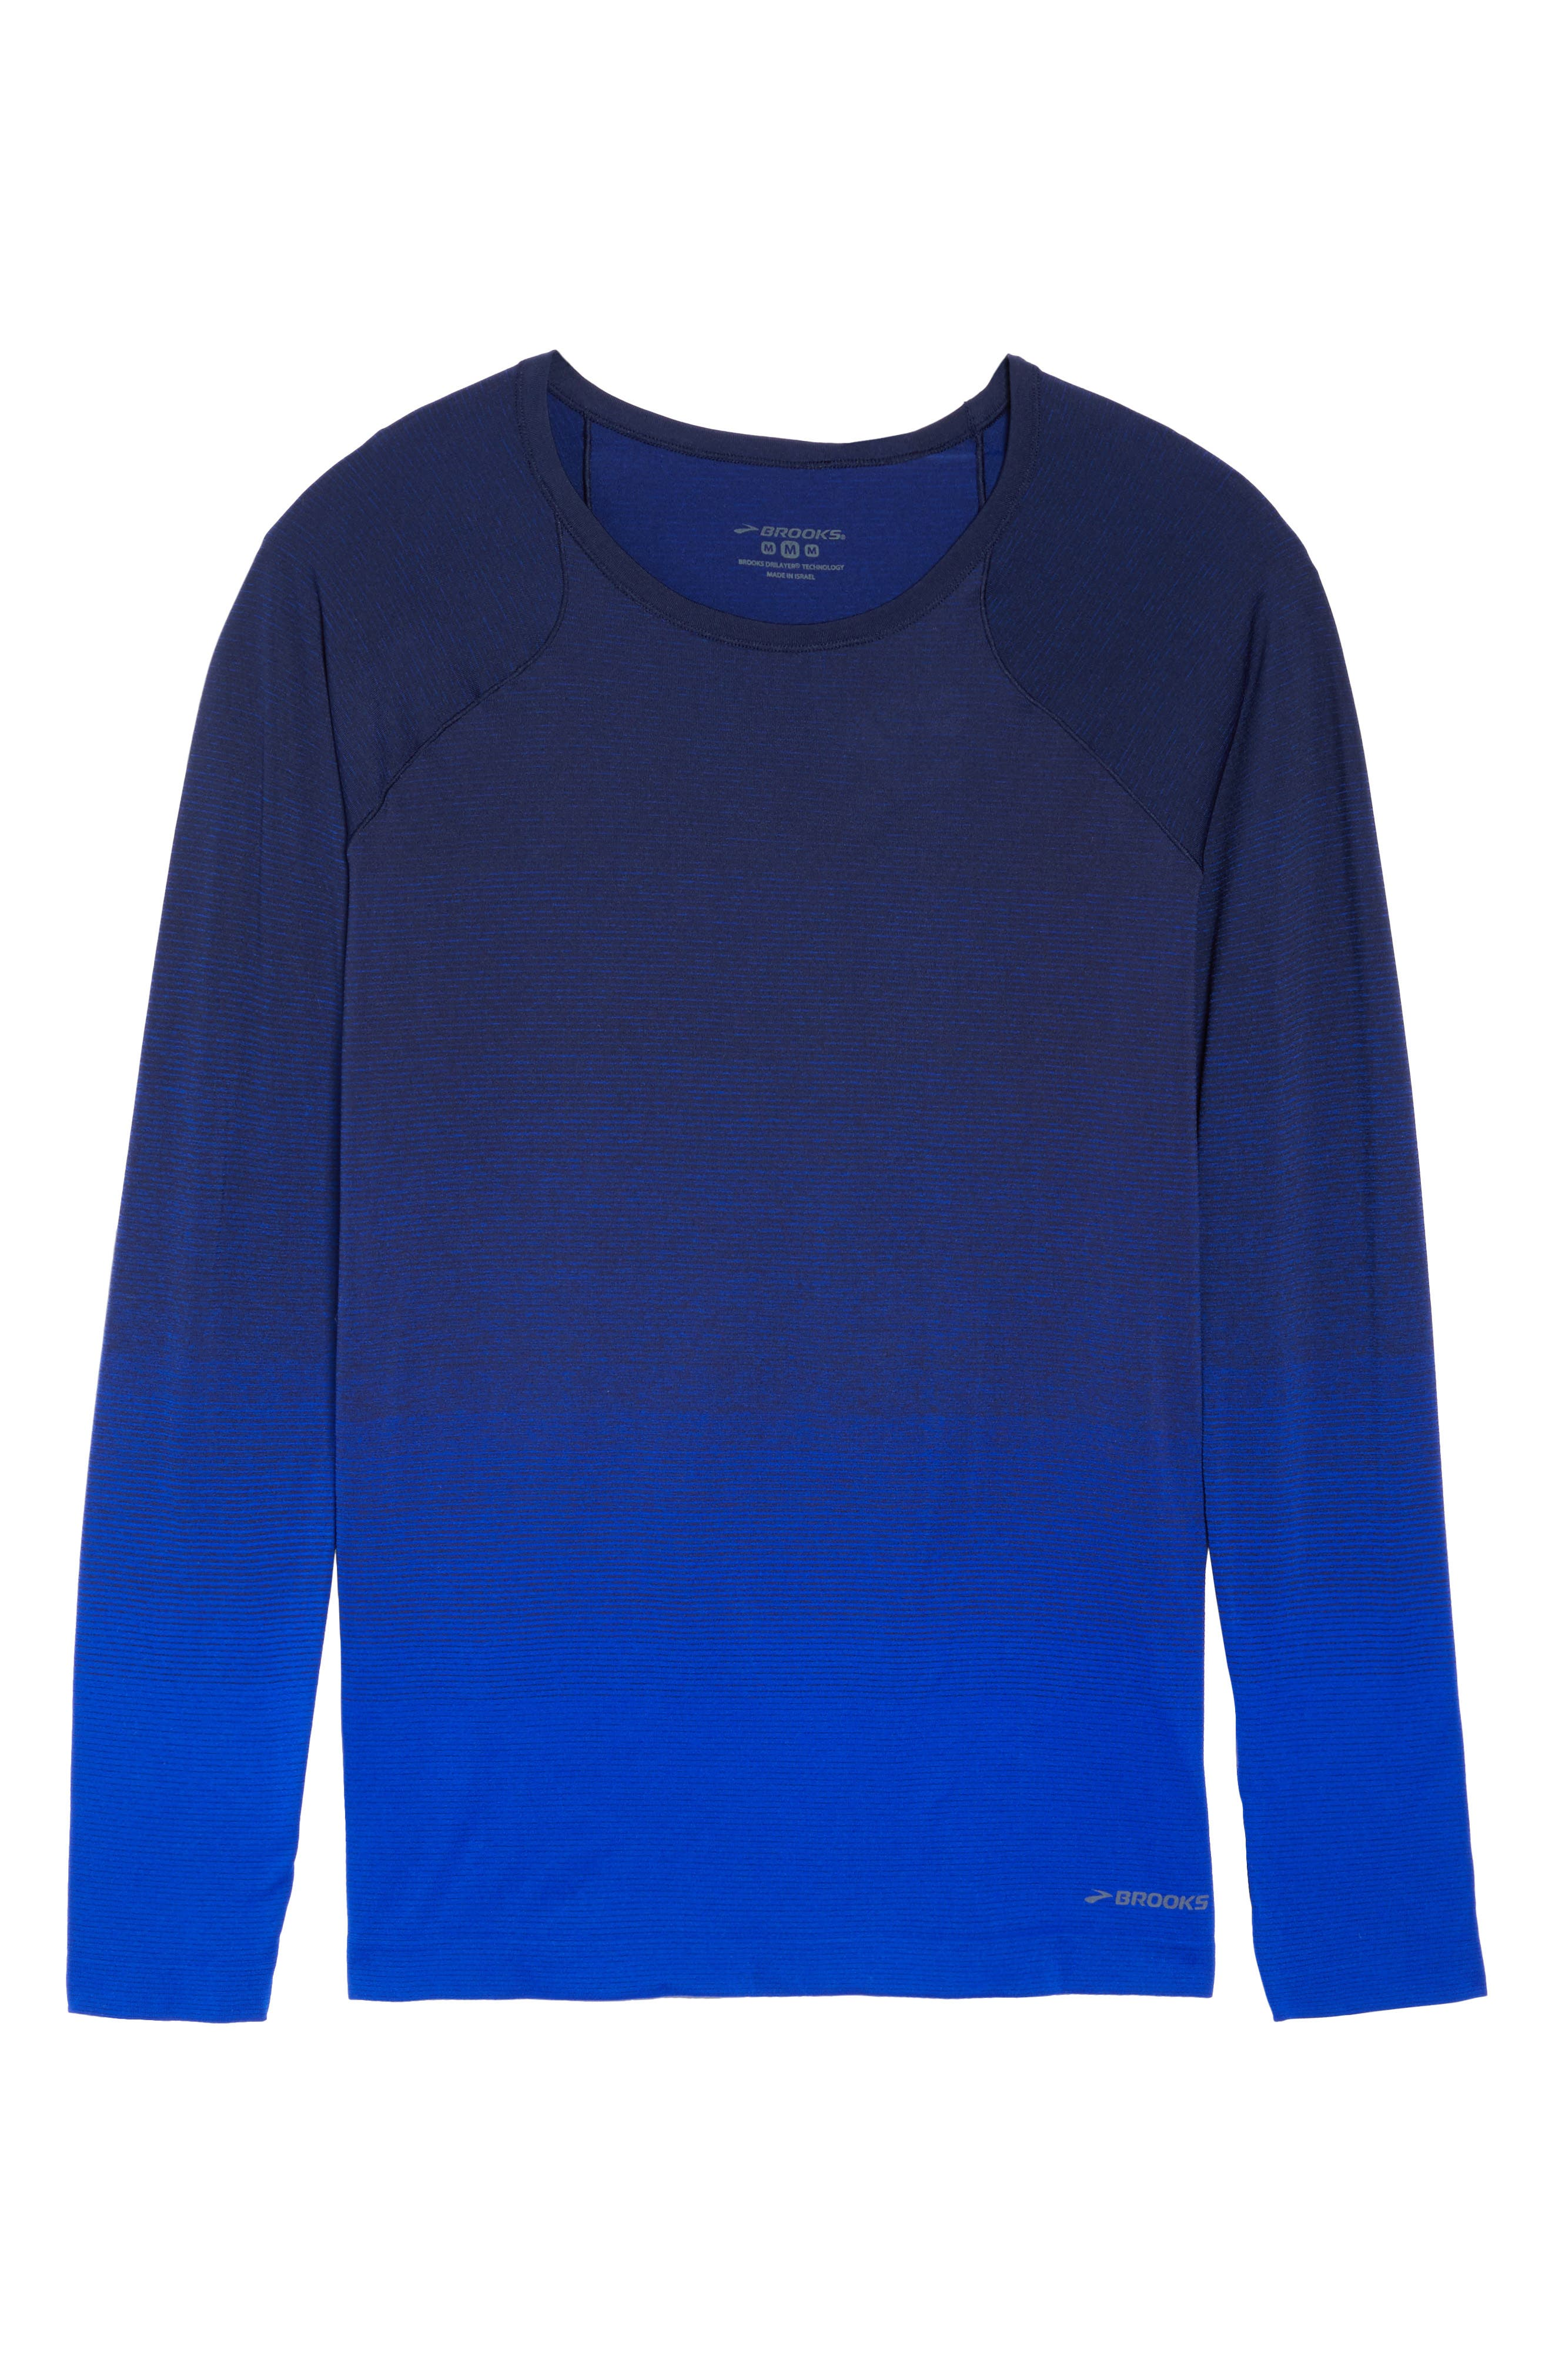 DriLayer Top,                             Alternate thumbnail 7, color,                             Navy/ Cobalt